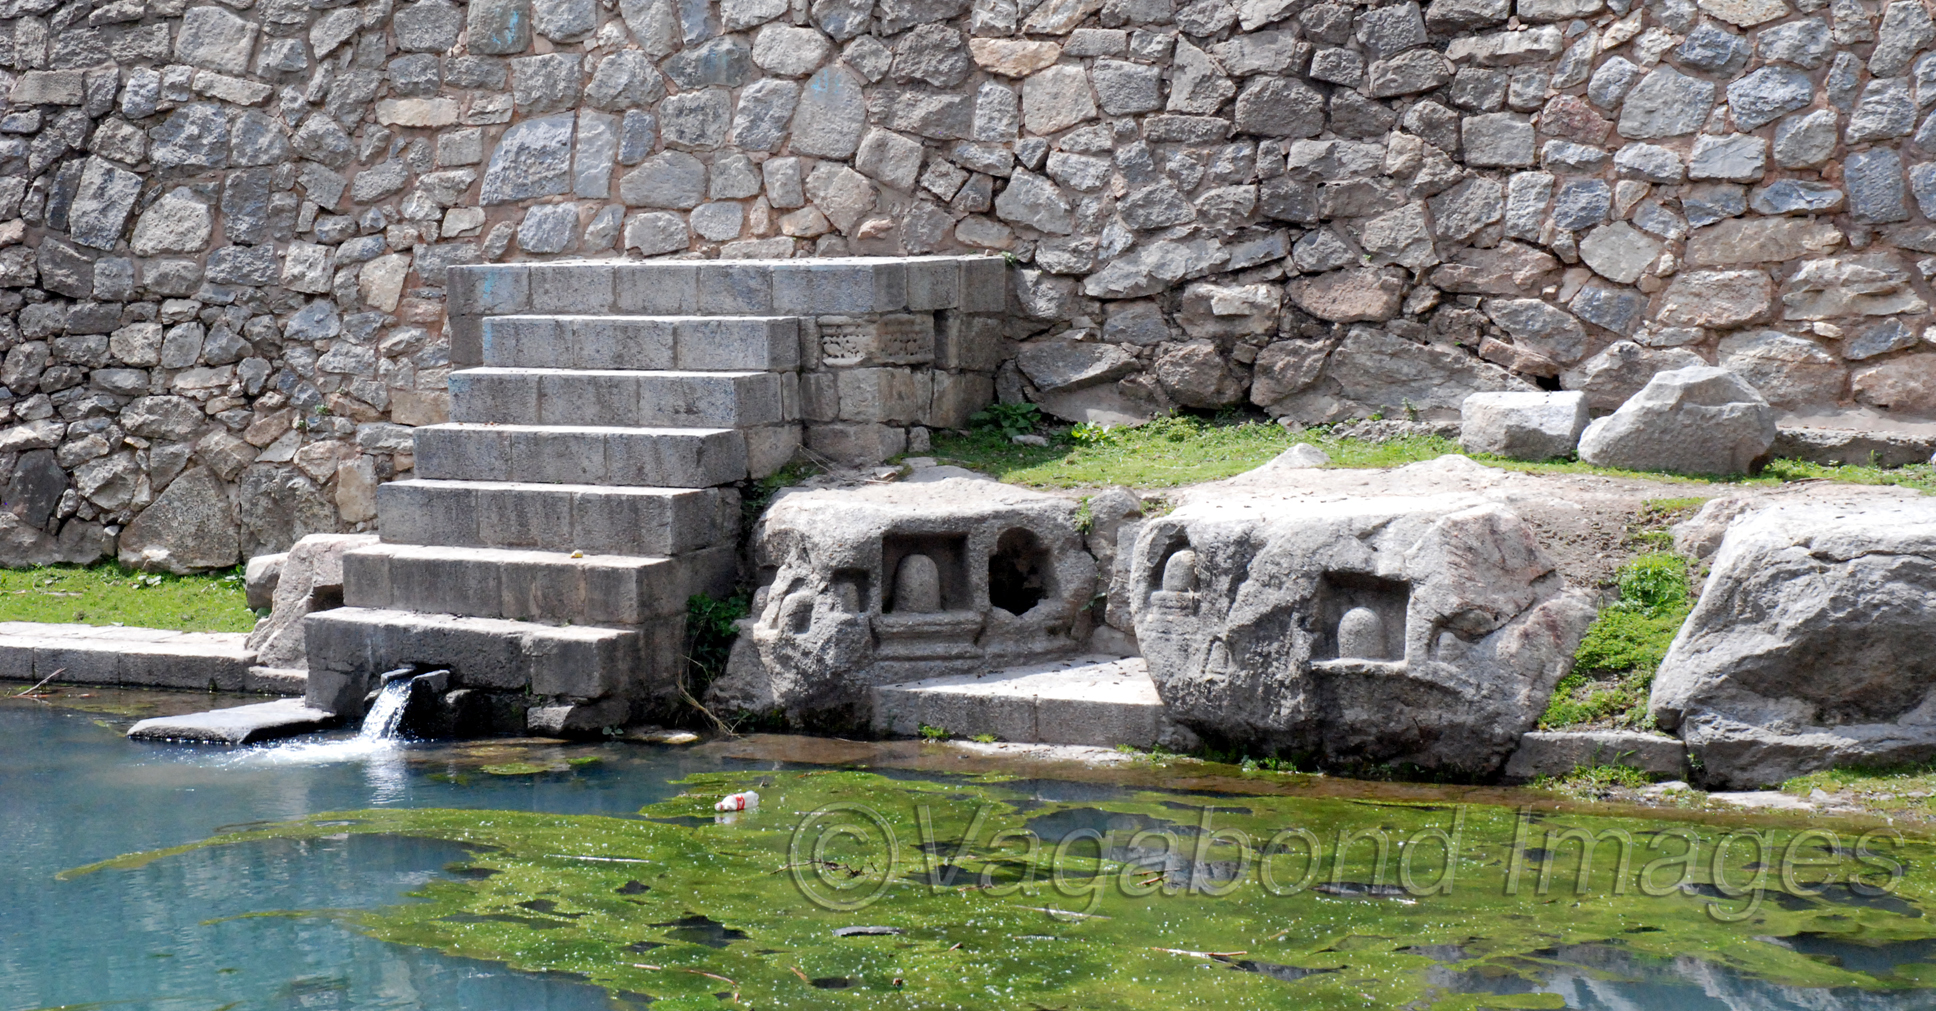 There is a small pond besides the temple clusters and it is believed to be as old as the temples